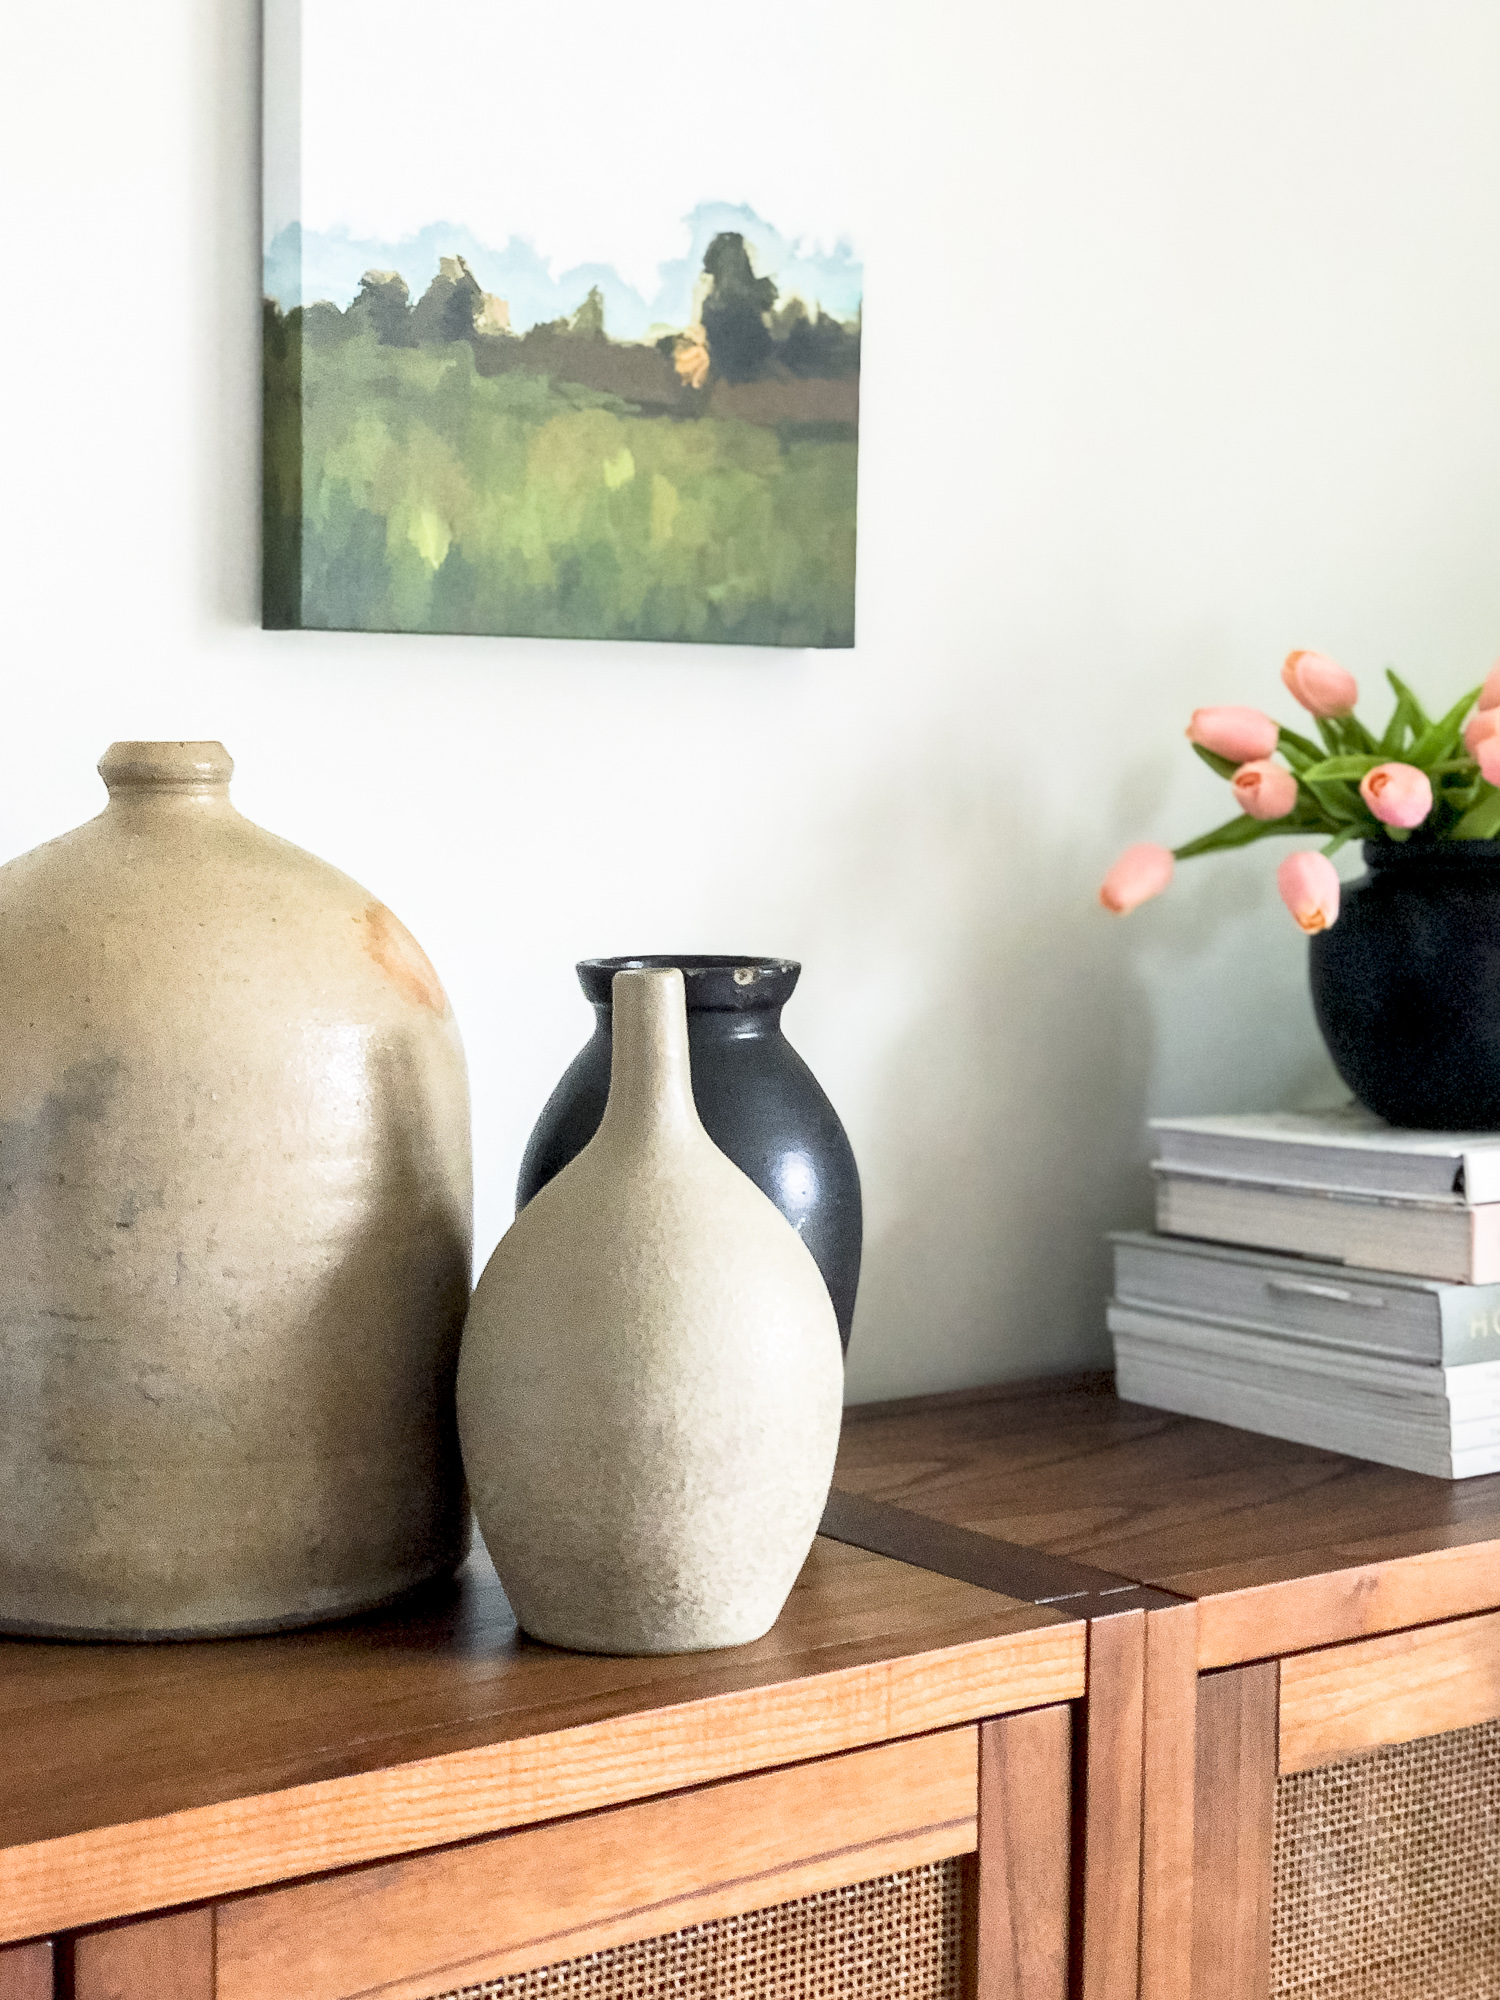 Vintage pottery as decor.